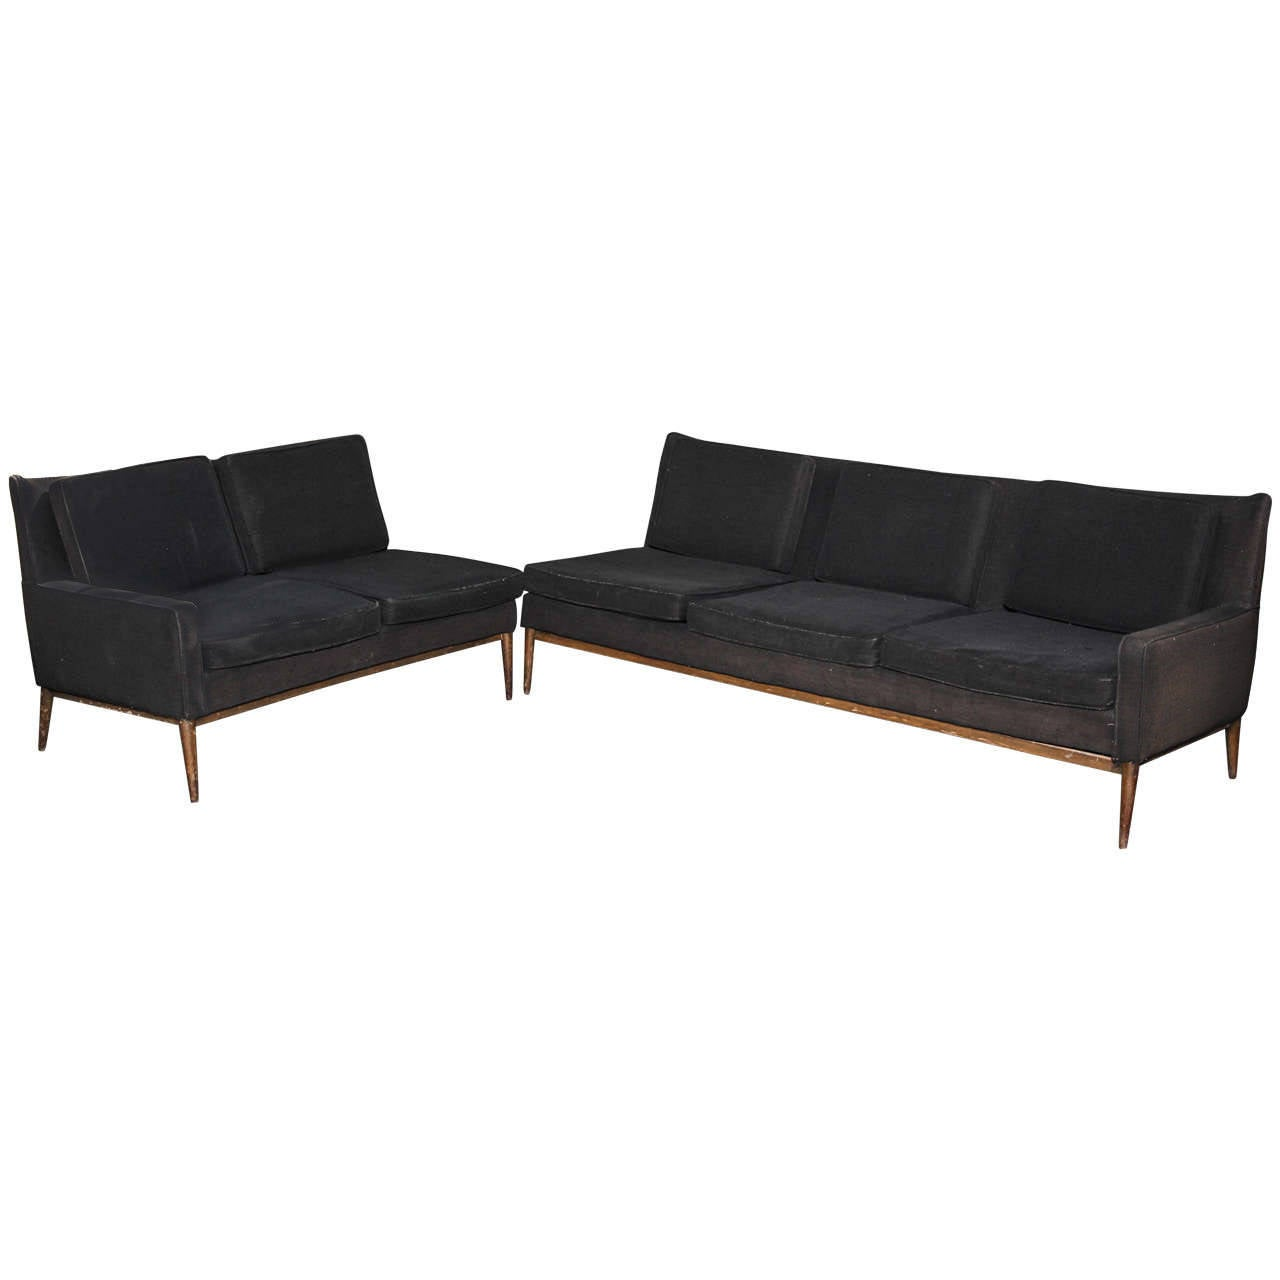 Paul McCobb Sectional Sofa for Directional